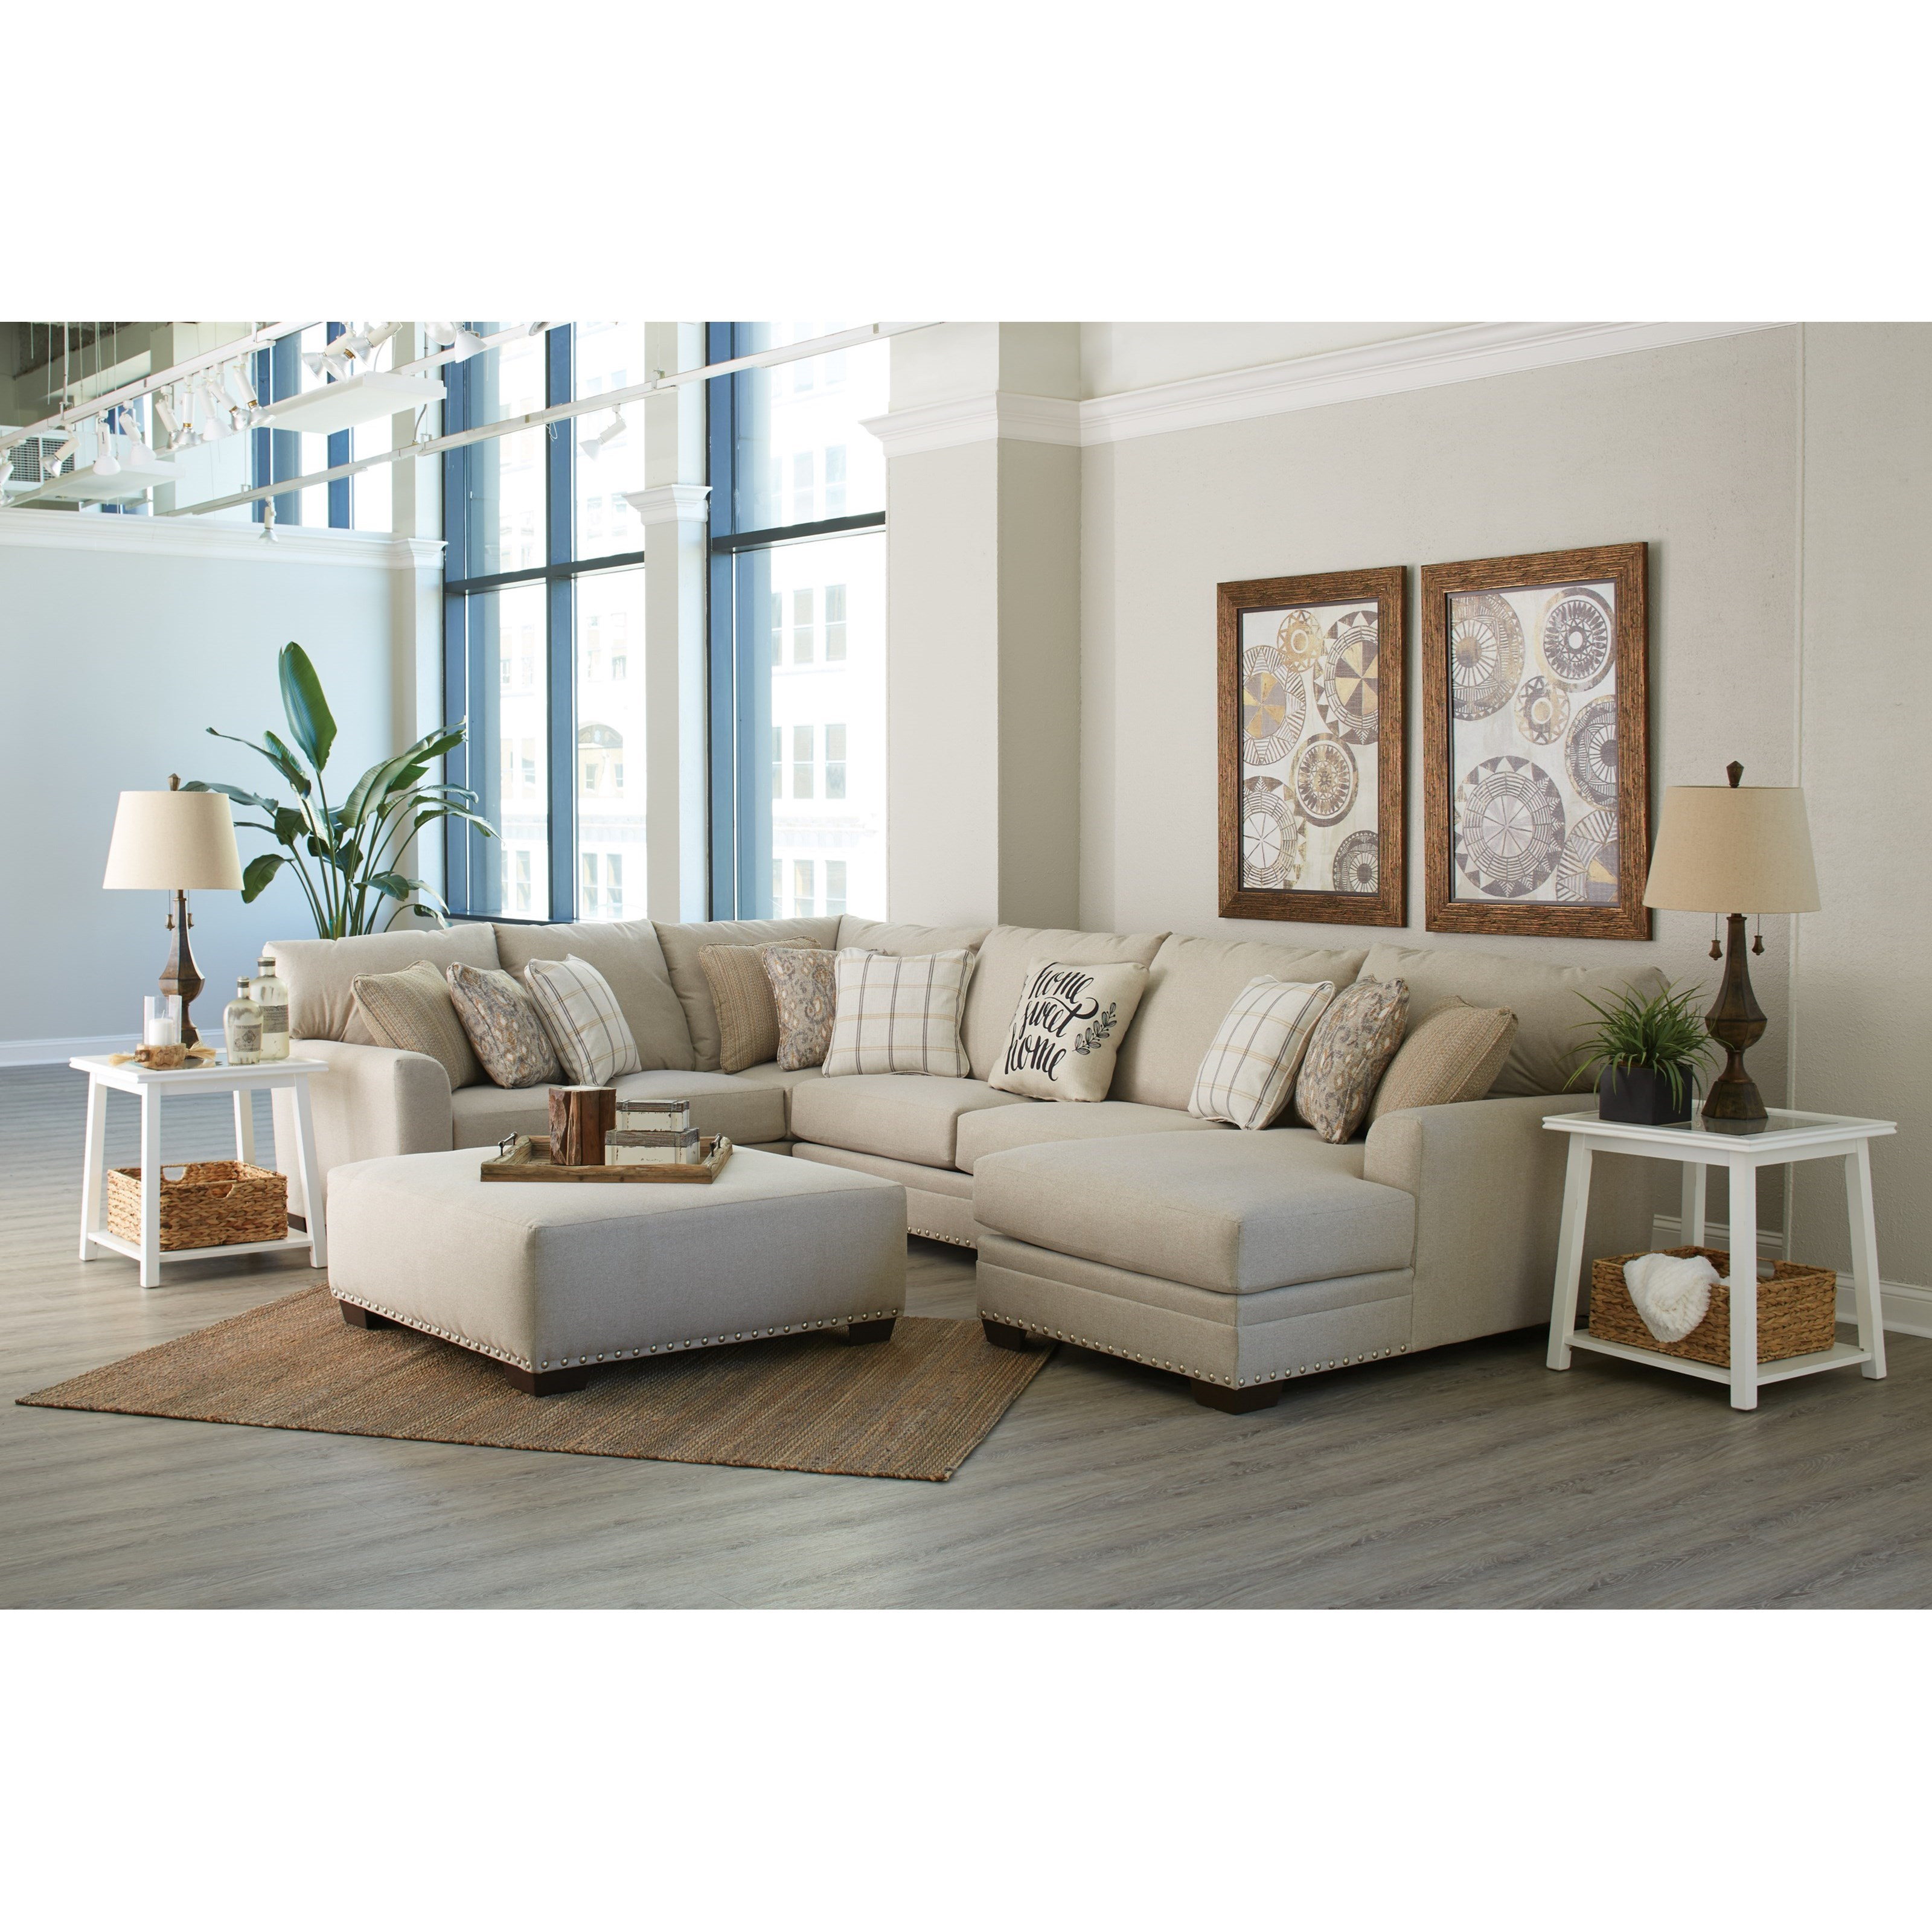 Middleton Living Room Group by Jackson Furniture at Lindy's Furniture Company